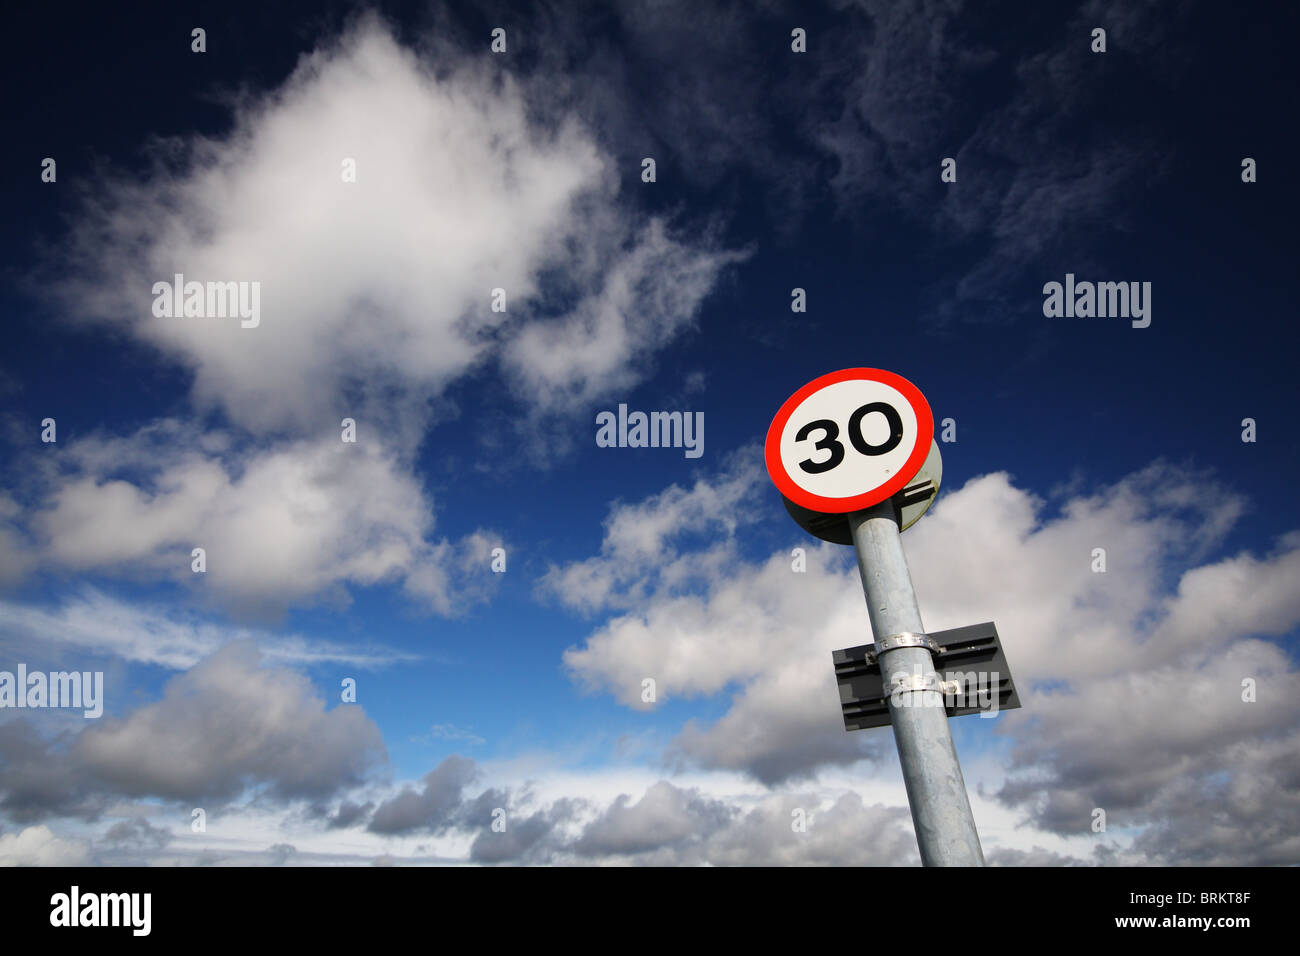 Shot of a 30 mph road sign set against a fantastic blue sky with white fluffy clouds. Stock Photo